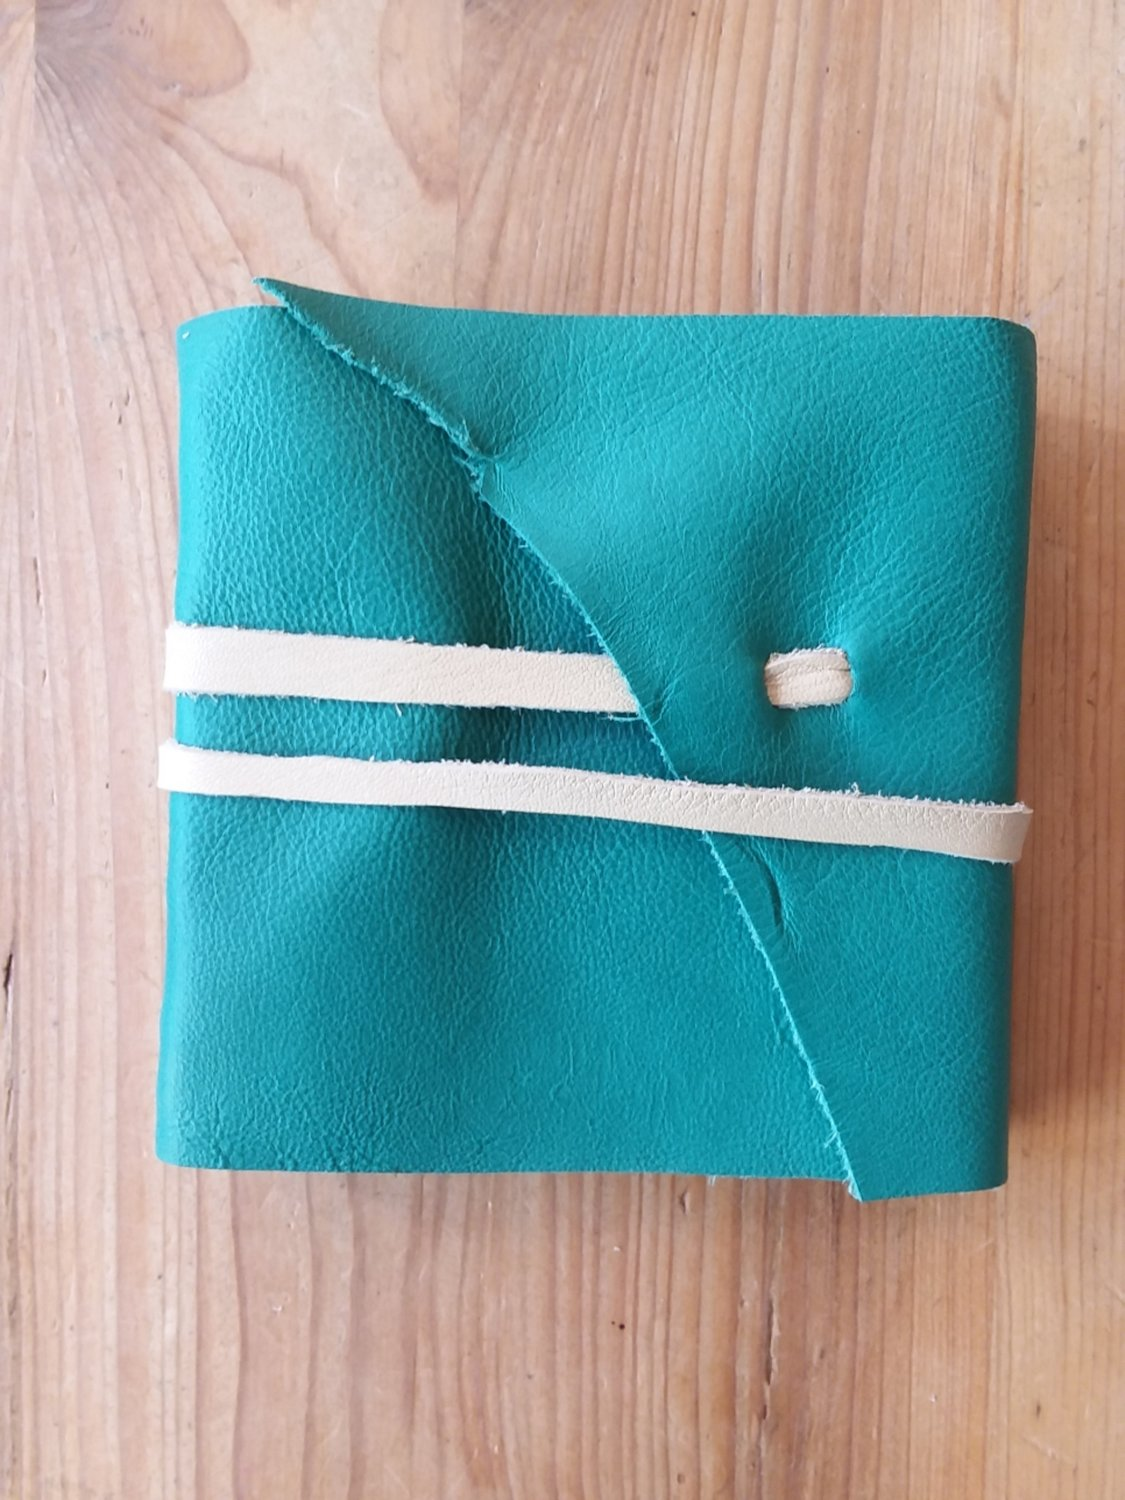 4x4 Leather Journal - Teal